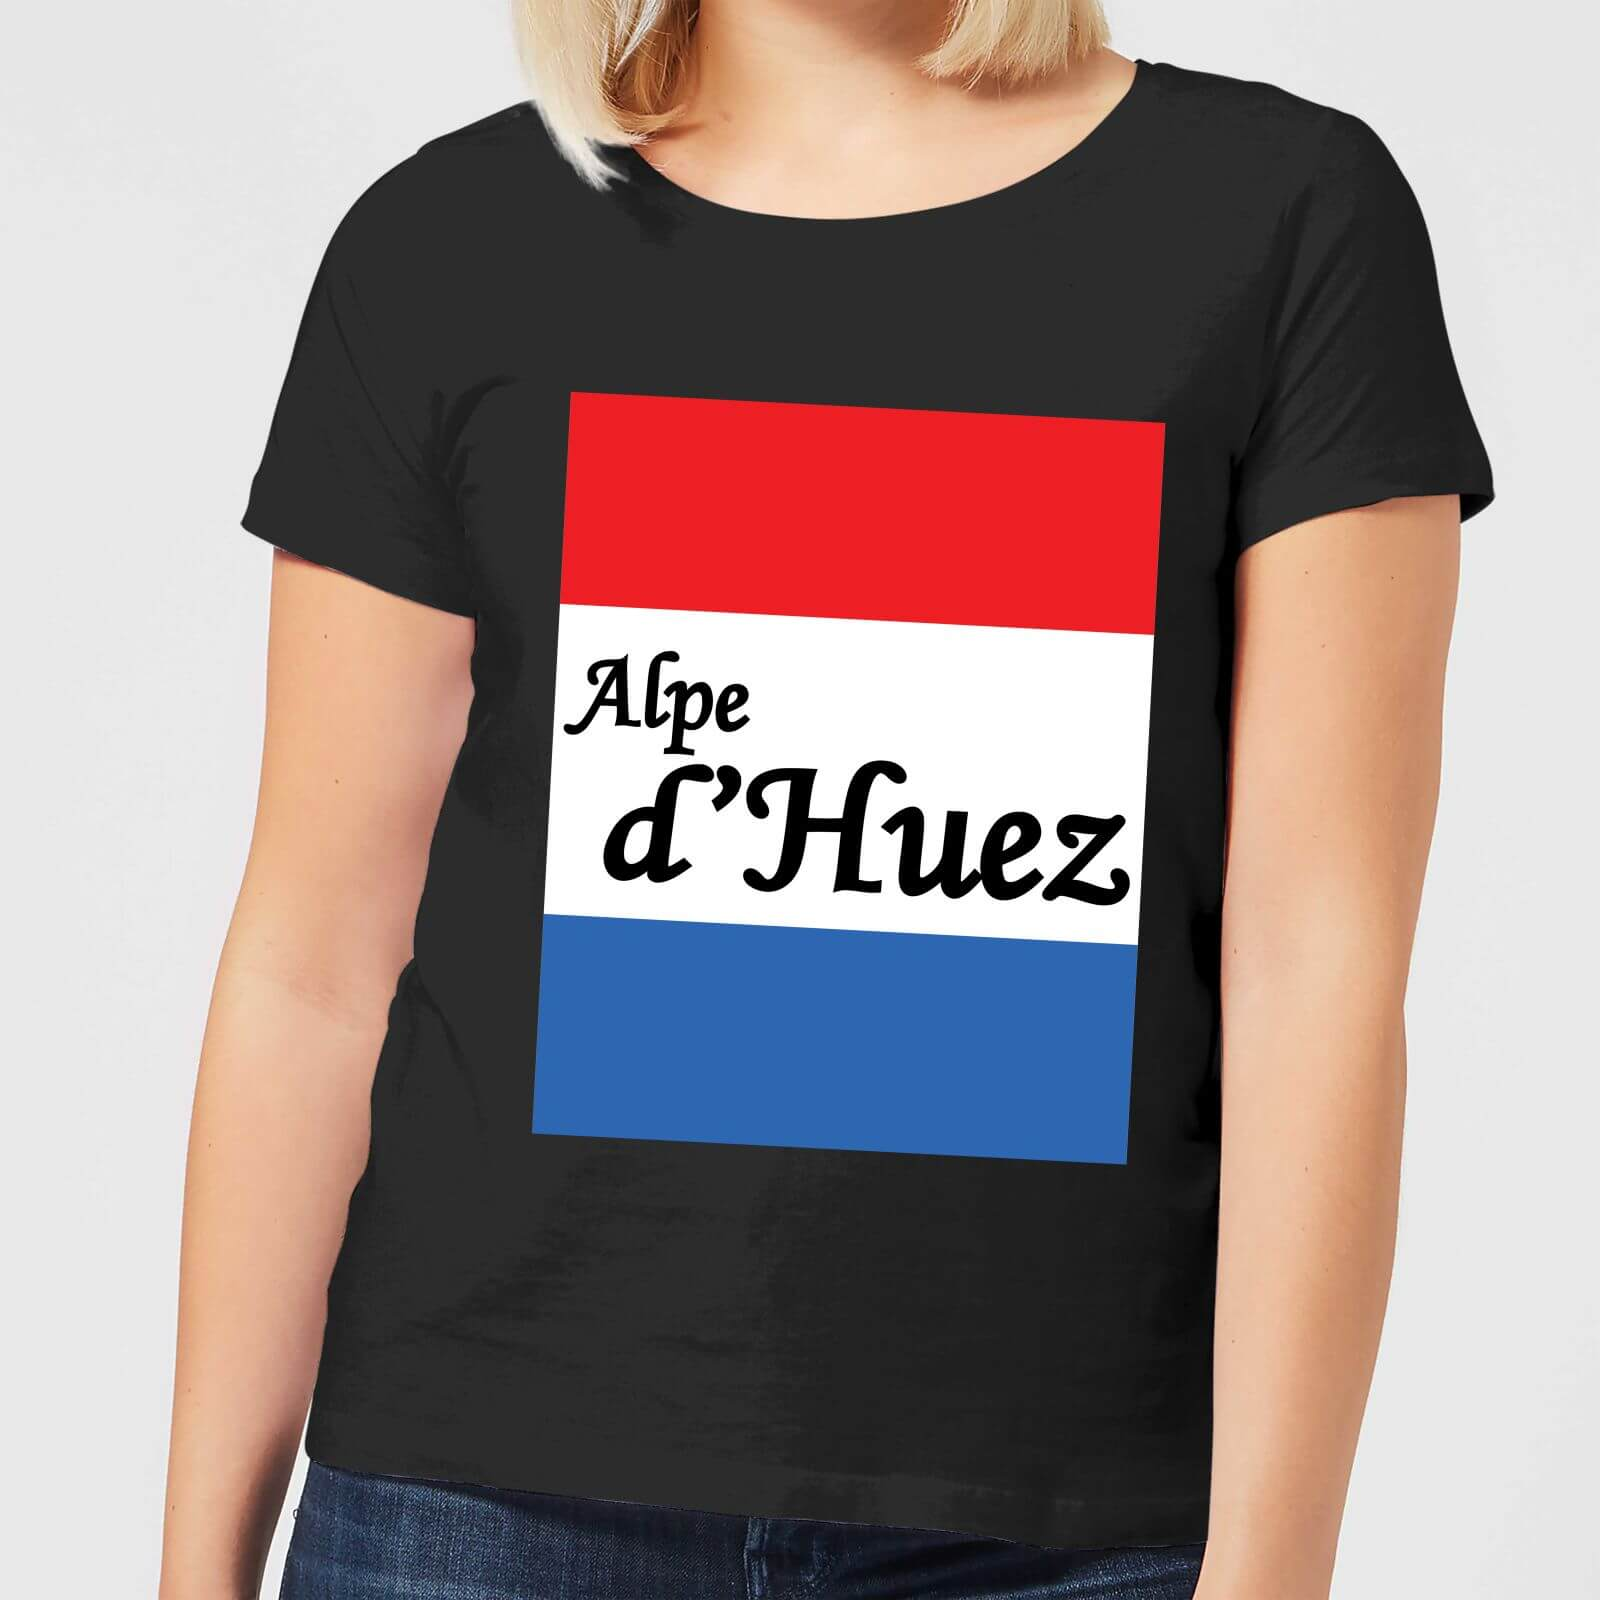 Summit Finish Alpe D'Huez Women's T-Shirt - Black - M - Black